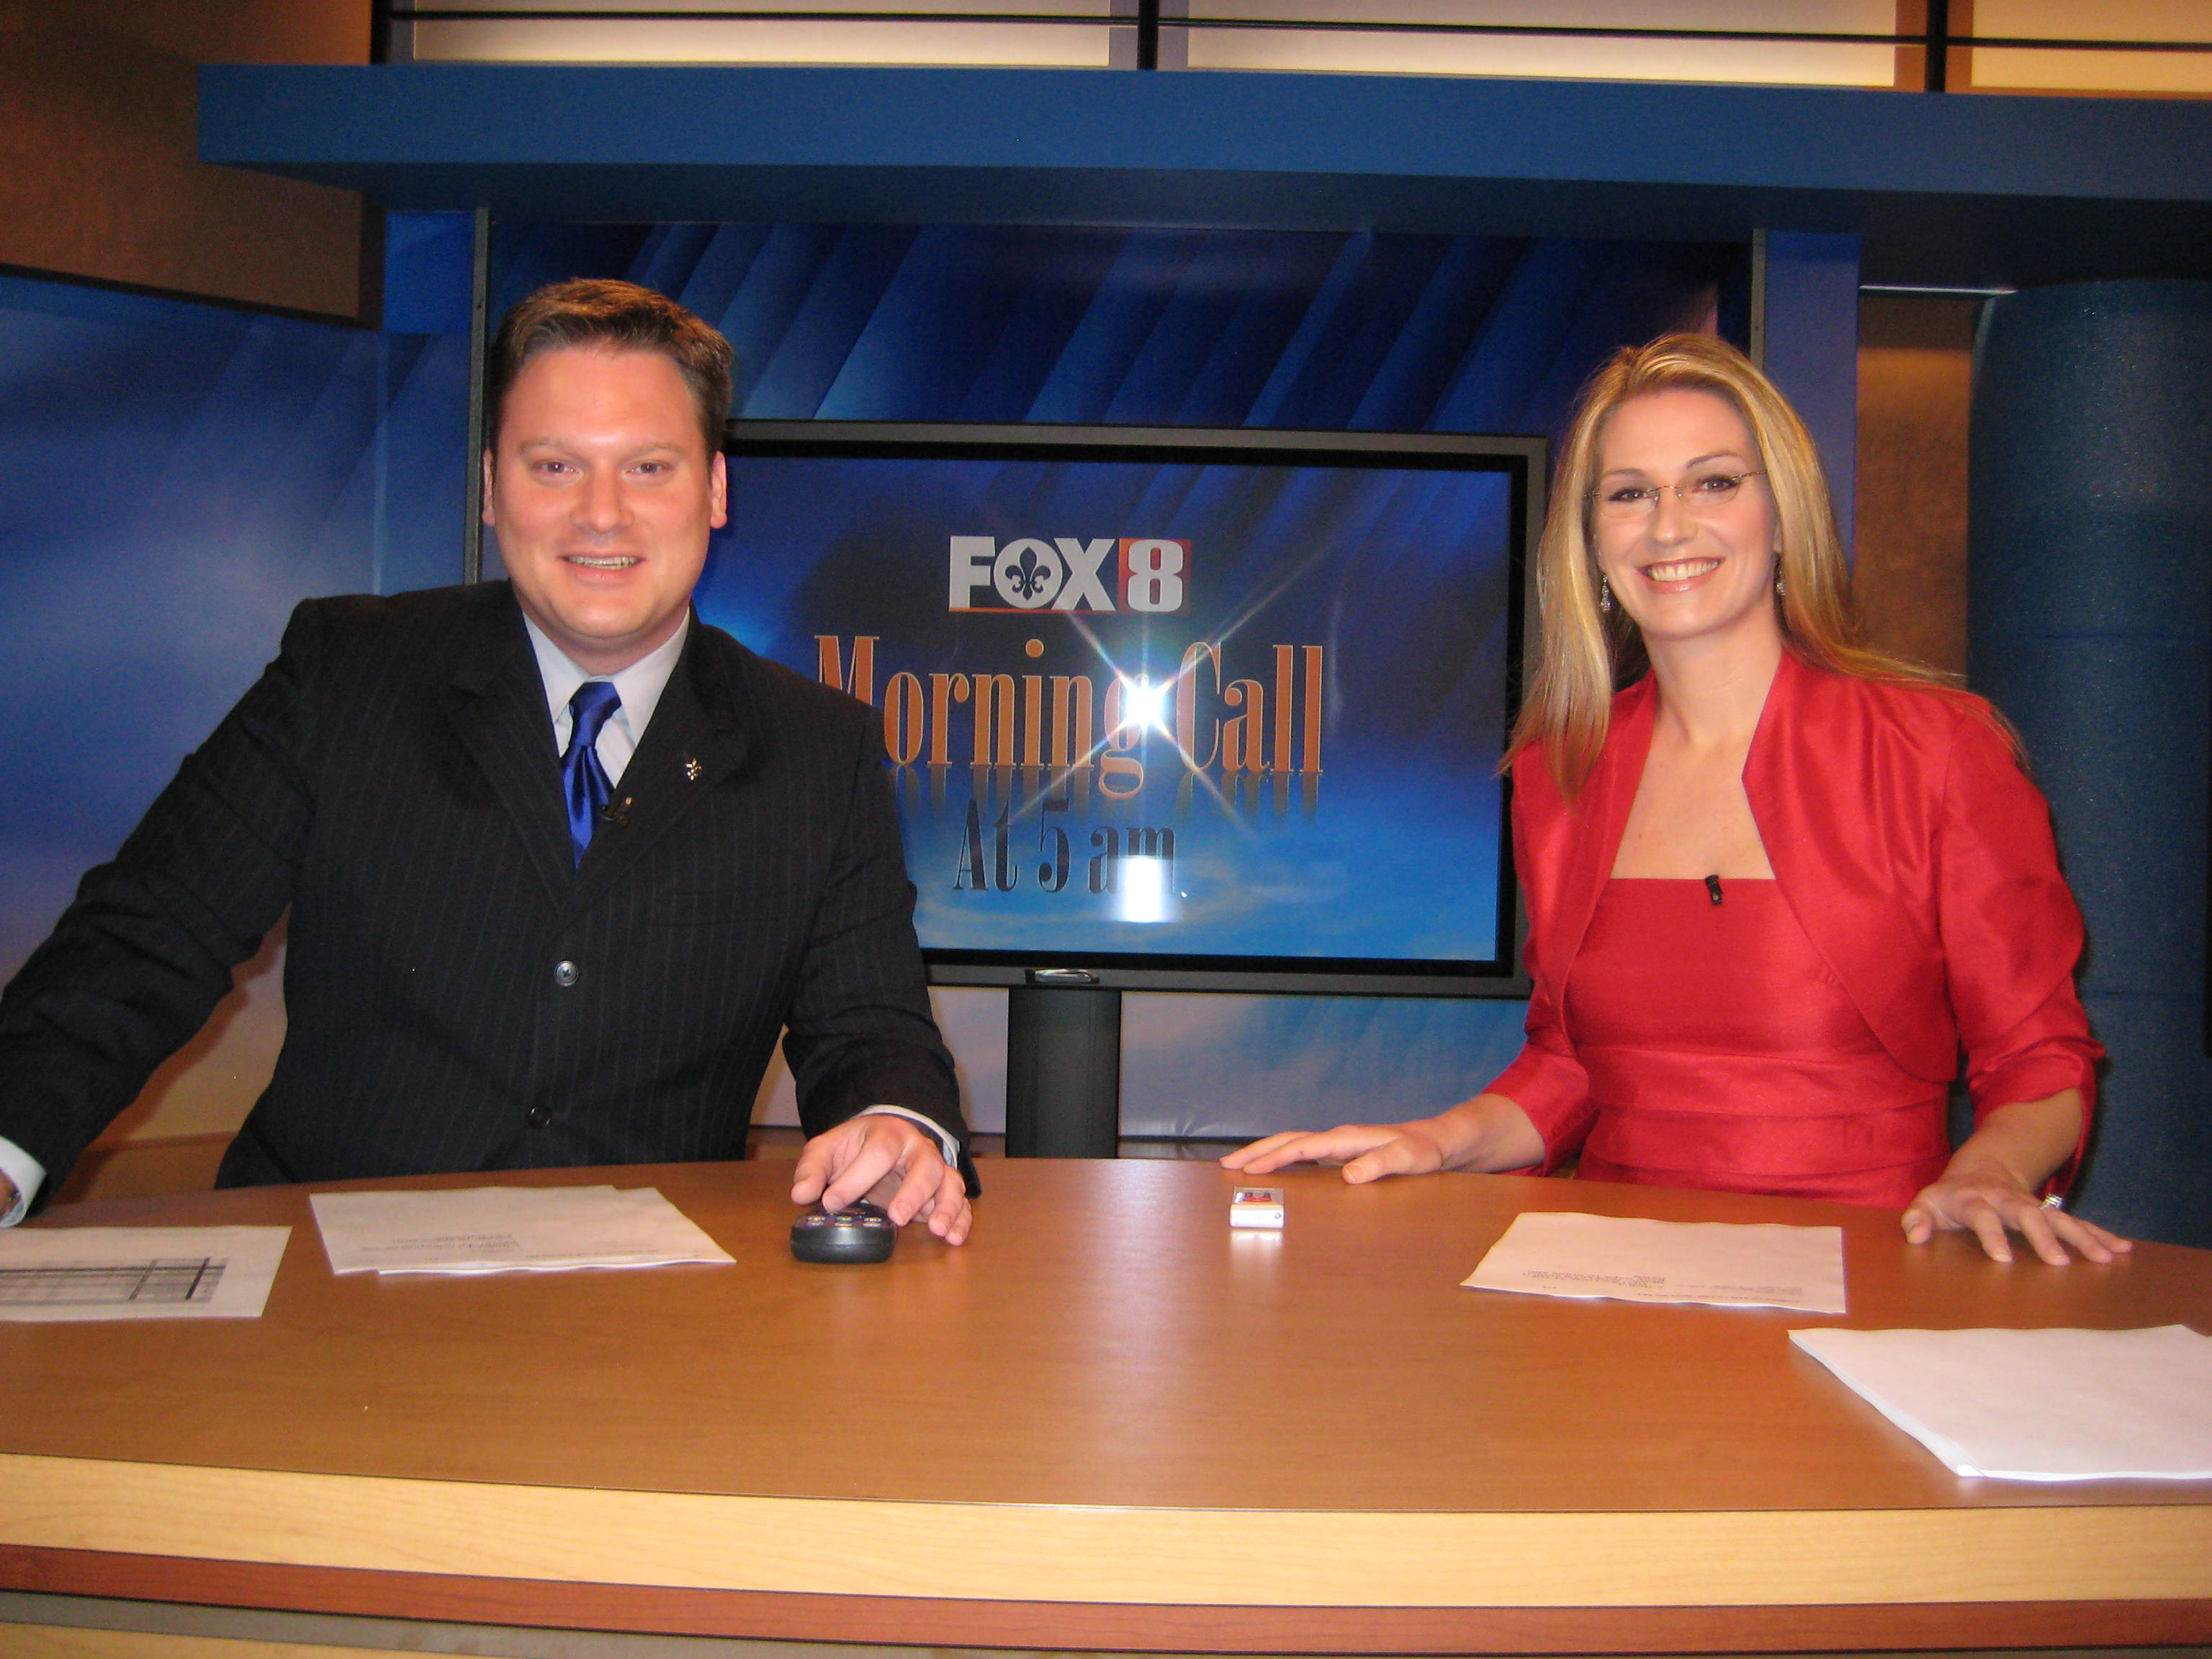 Chris Franklin and Dawn Brown, WVUE New Orleans